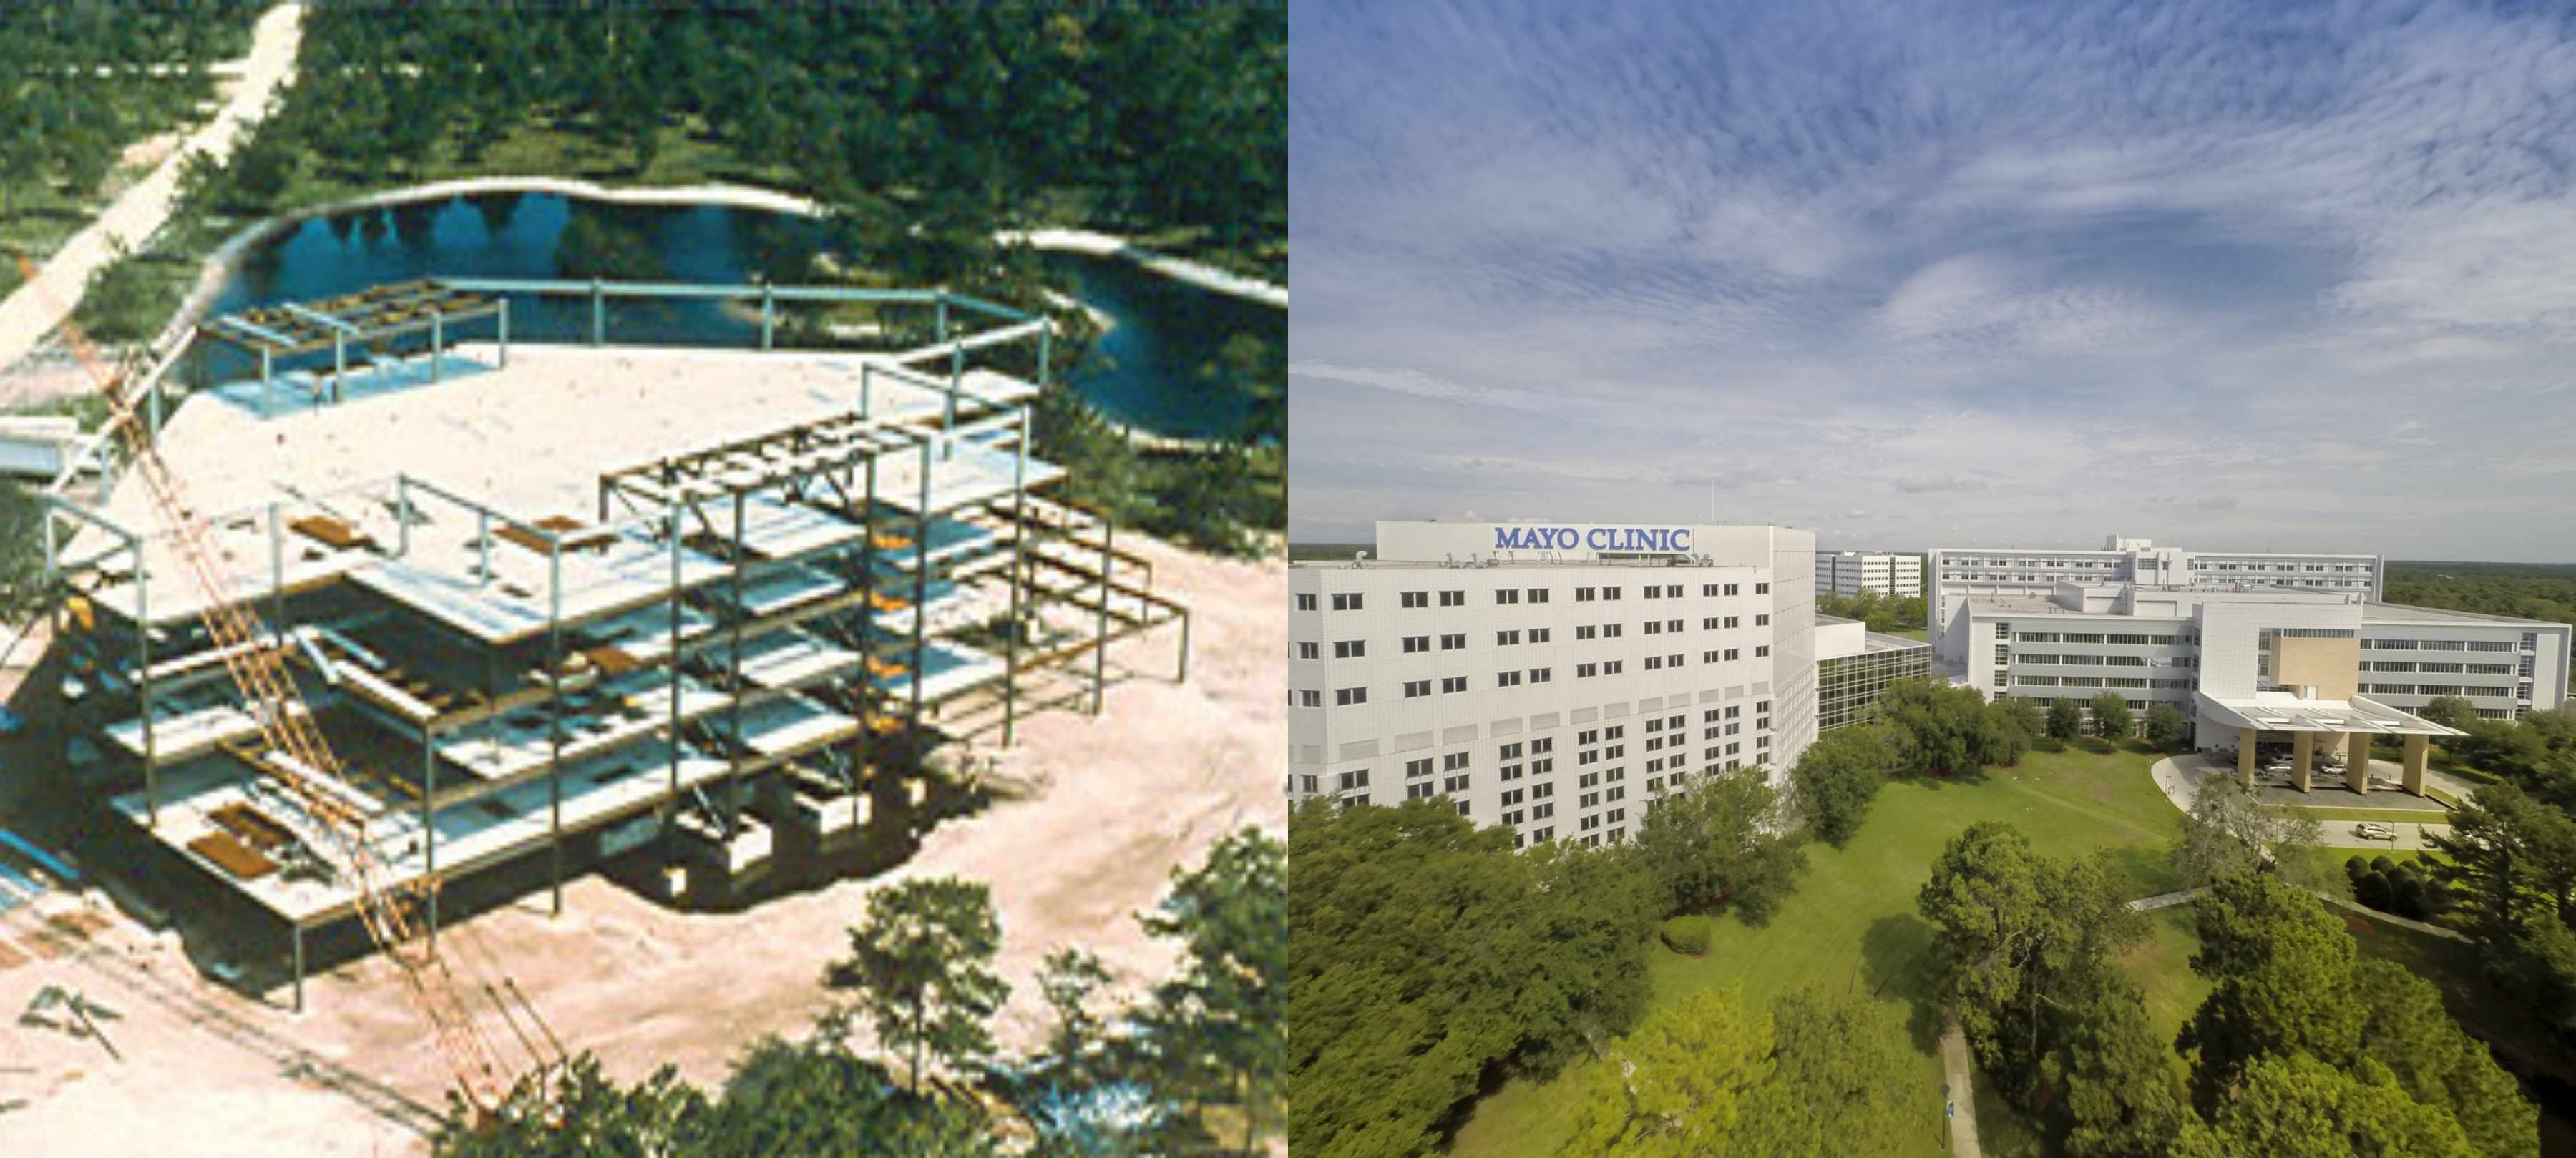 The land in 1986 when Mayo Clinic in Florida was first being developed, graciously donated by the Davis family; and the campus today.